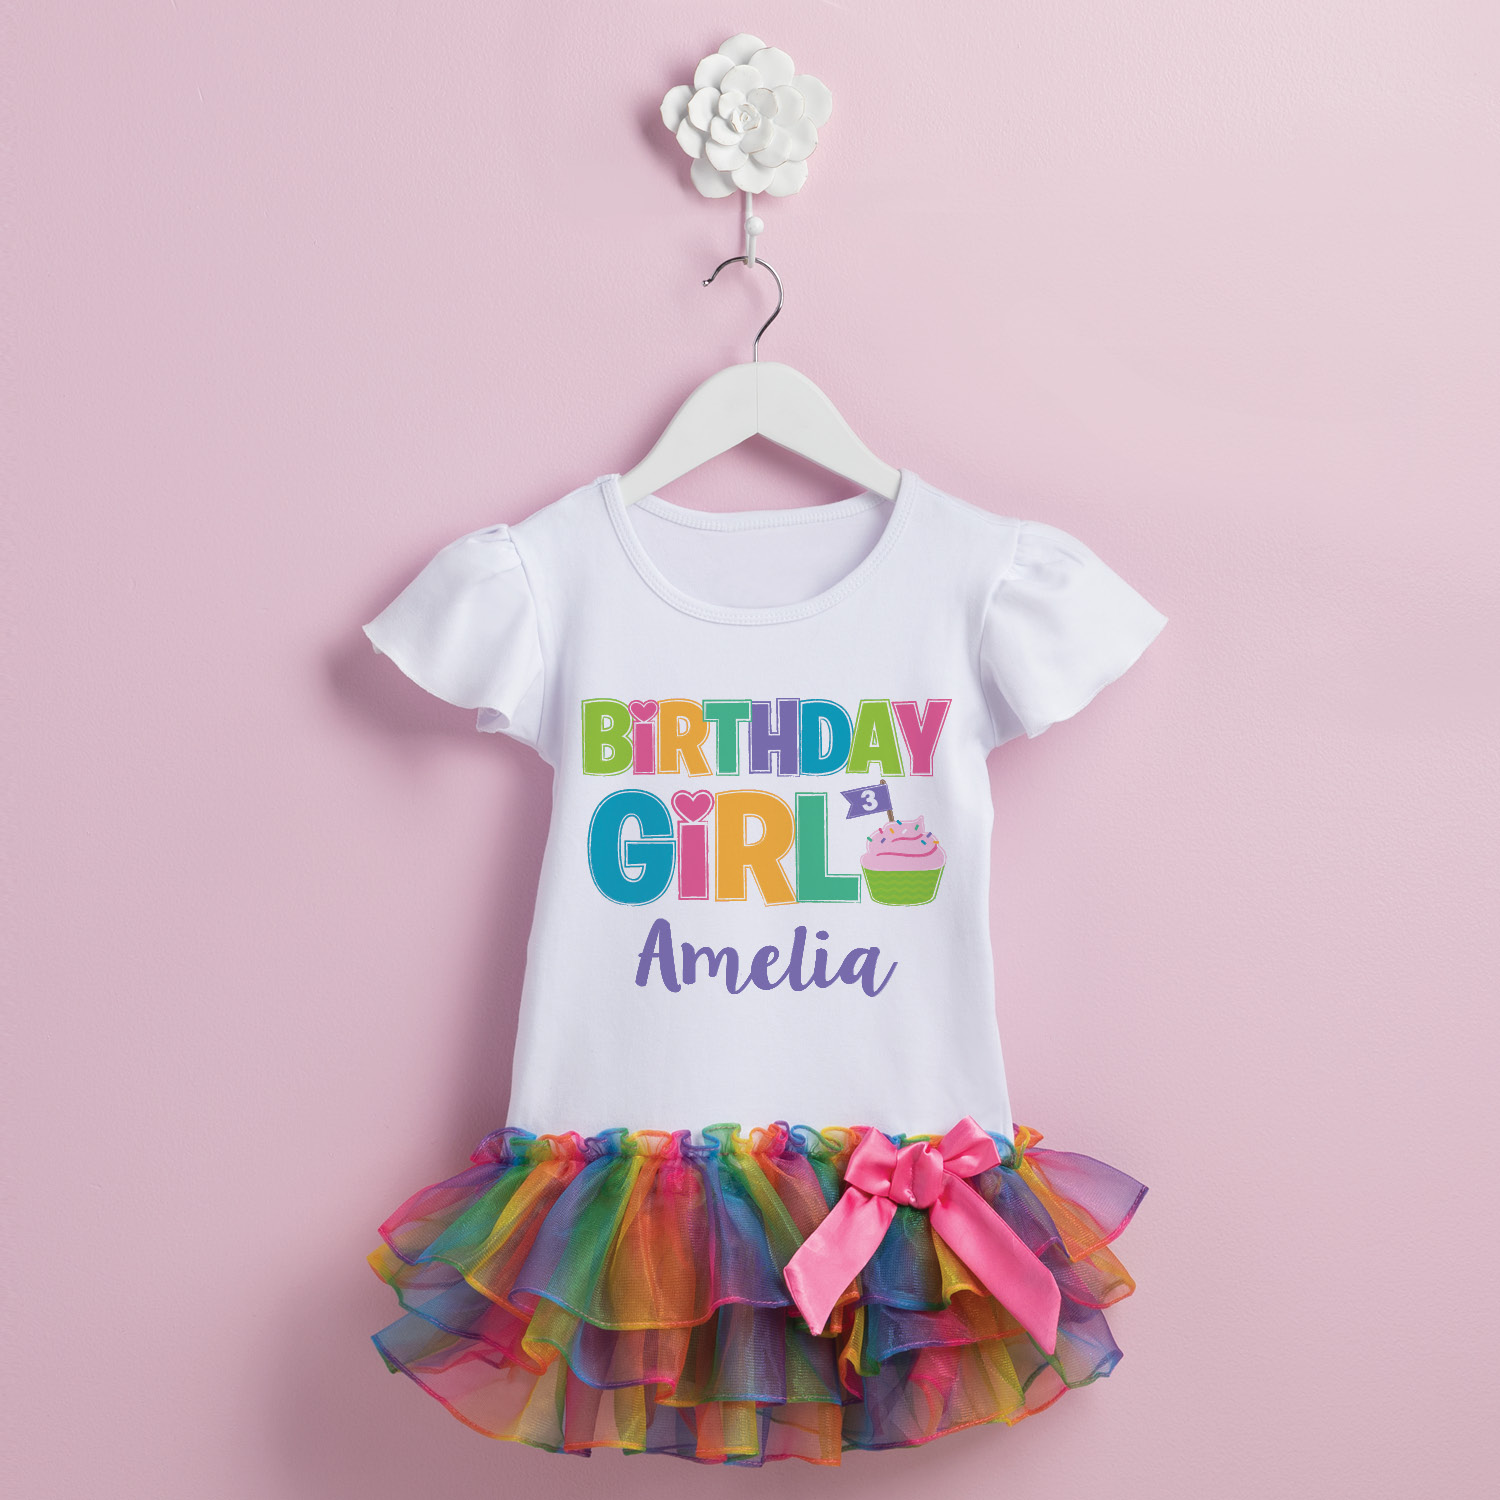 Birthday Girl Personalized Rainbow Tutu Tee - 2T, 3T, 4T, 5/6T